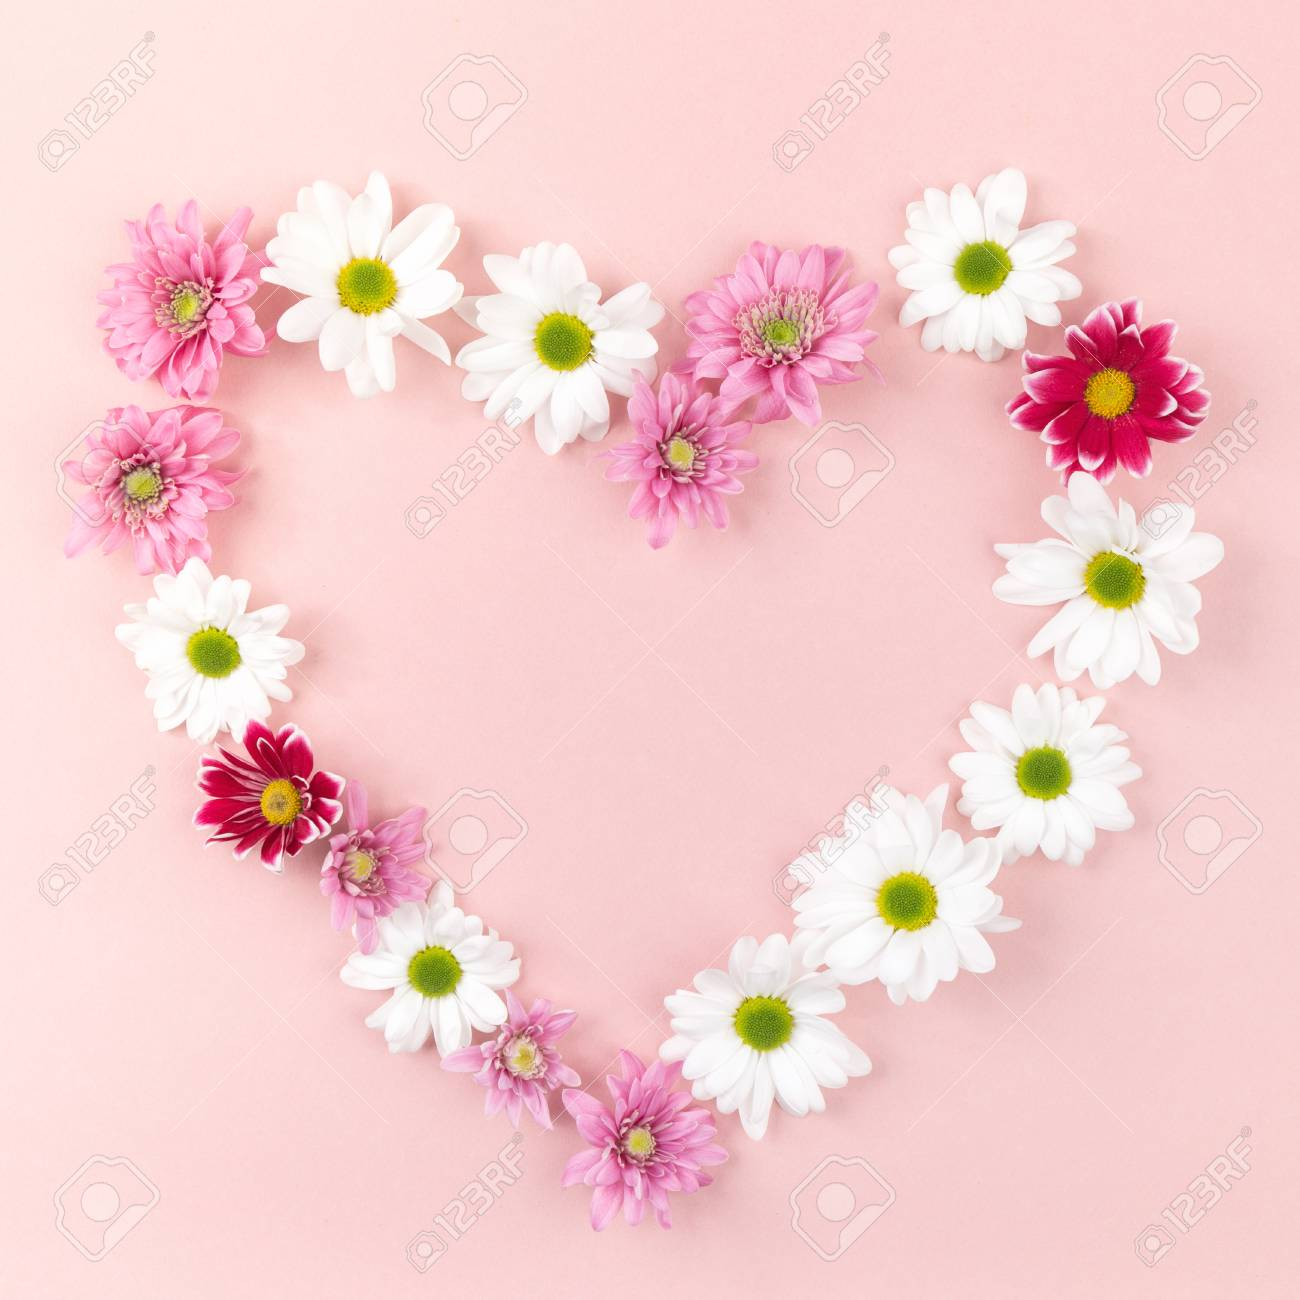 From Above Heart Made Of Different Colored Flowers On Pink